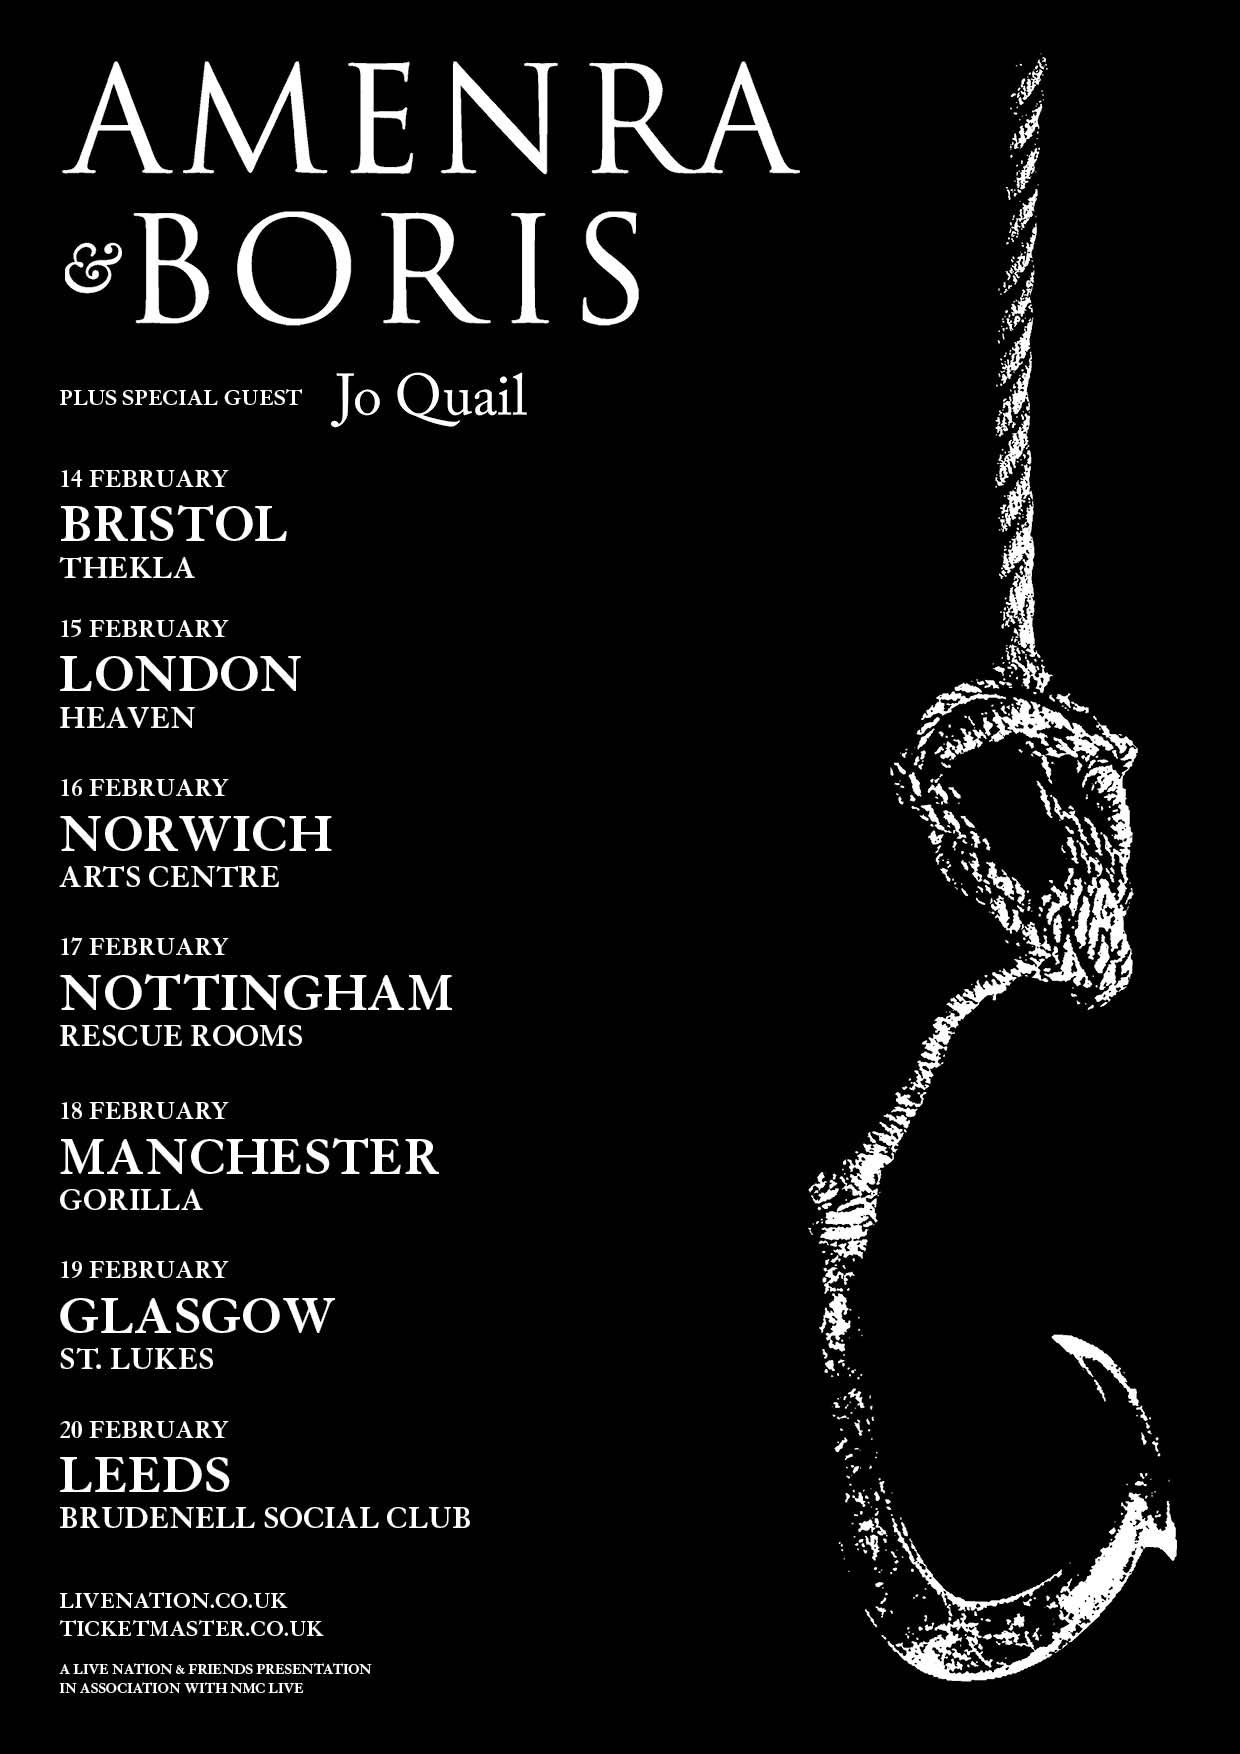 Leeds supporting Amenra and Boris